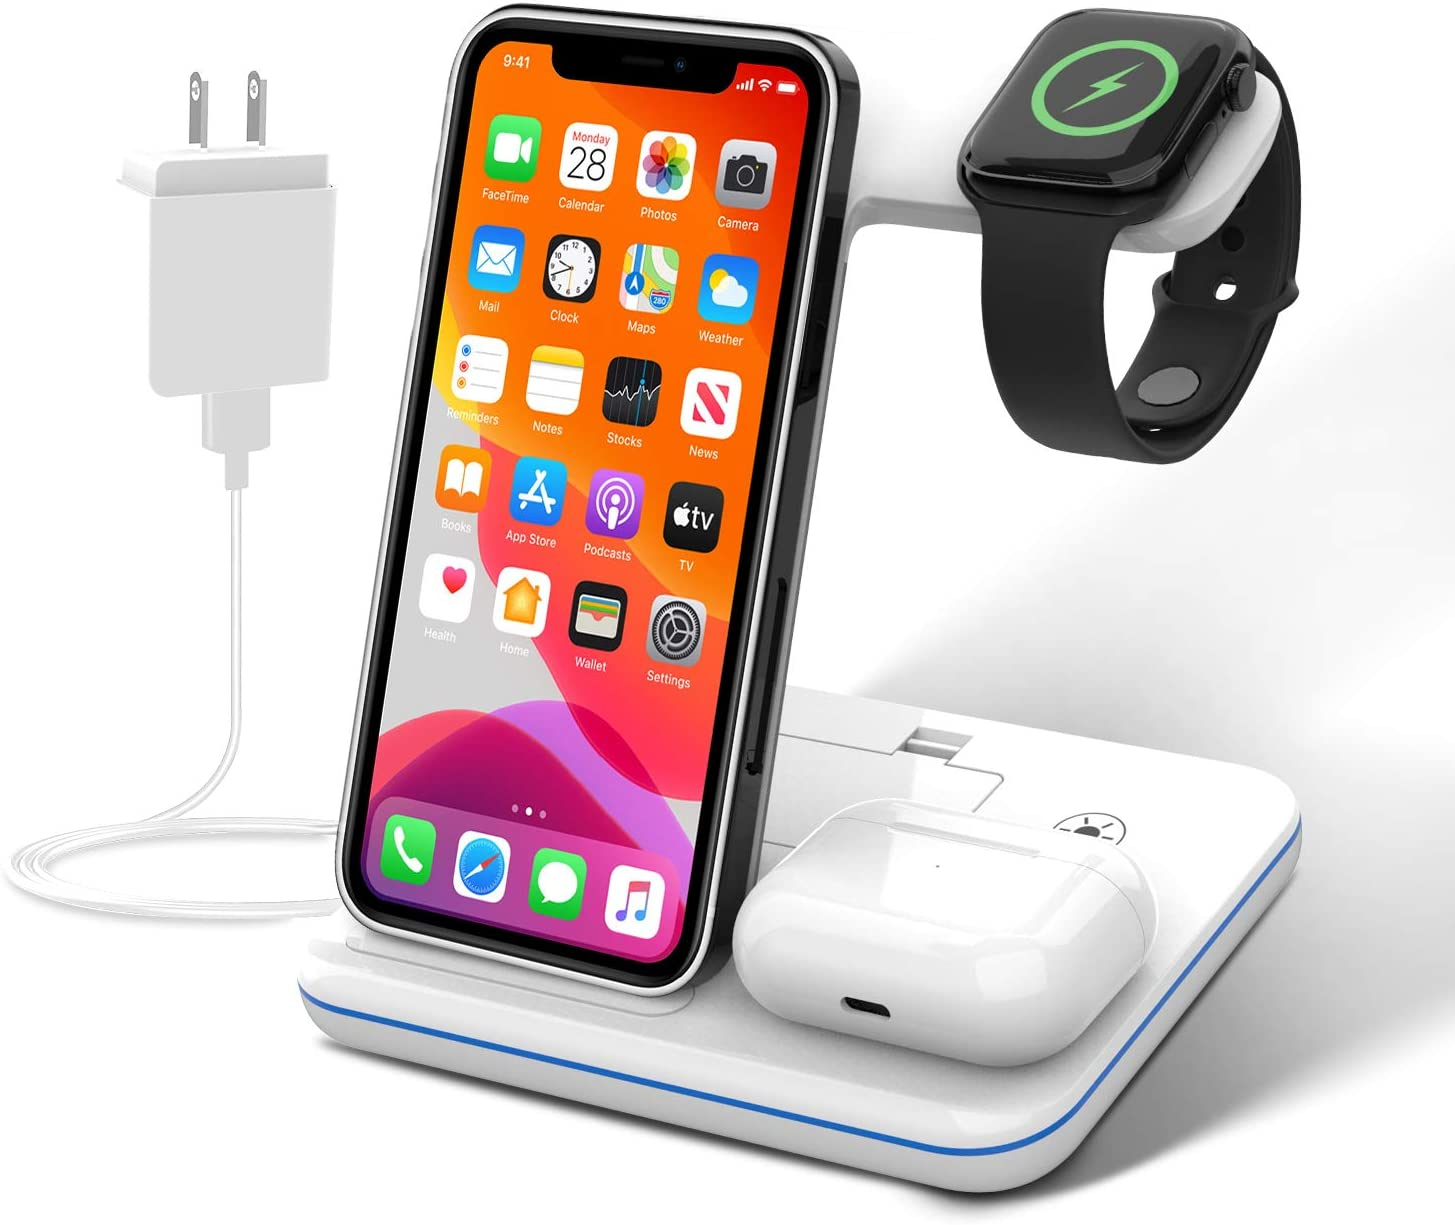 15W Wireless Charging Station (With Adapter), Yunerz 3-in-1 Fast Wireless Charger for Apple iPhone 12/11/X/8 Series, Galaxy Note 20/20 Ultra, S20/S20 Ultra, Apple Watch Series/6/SE, Airpods